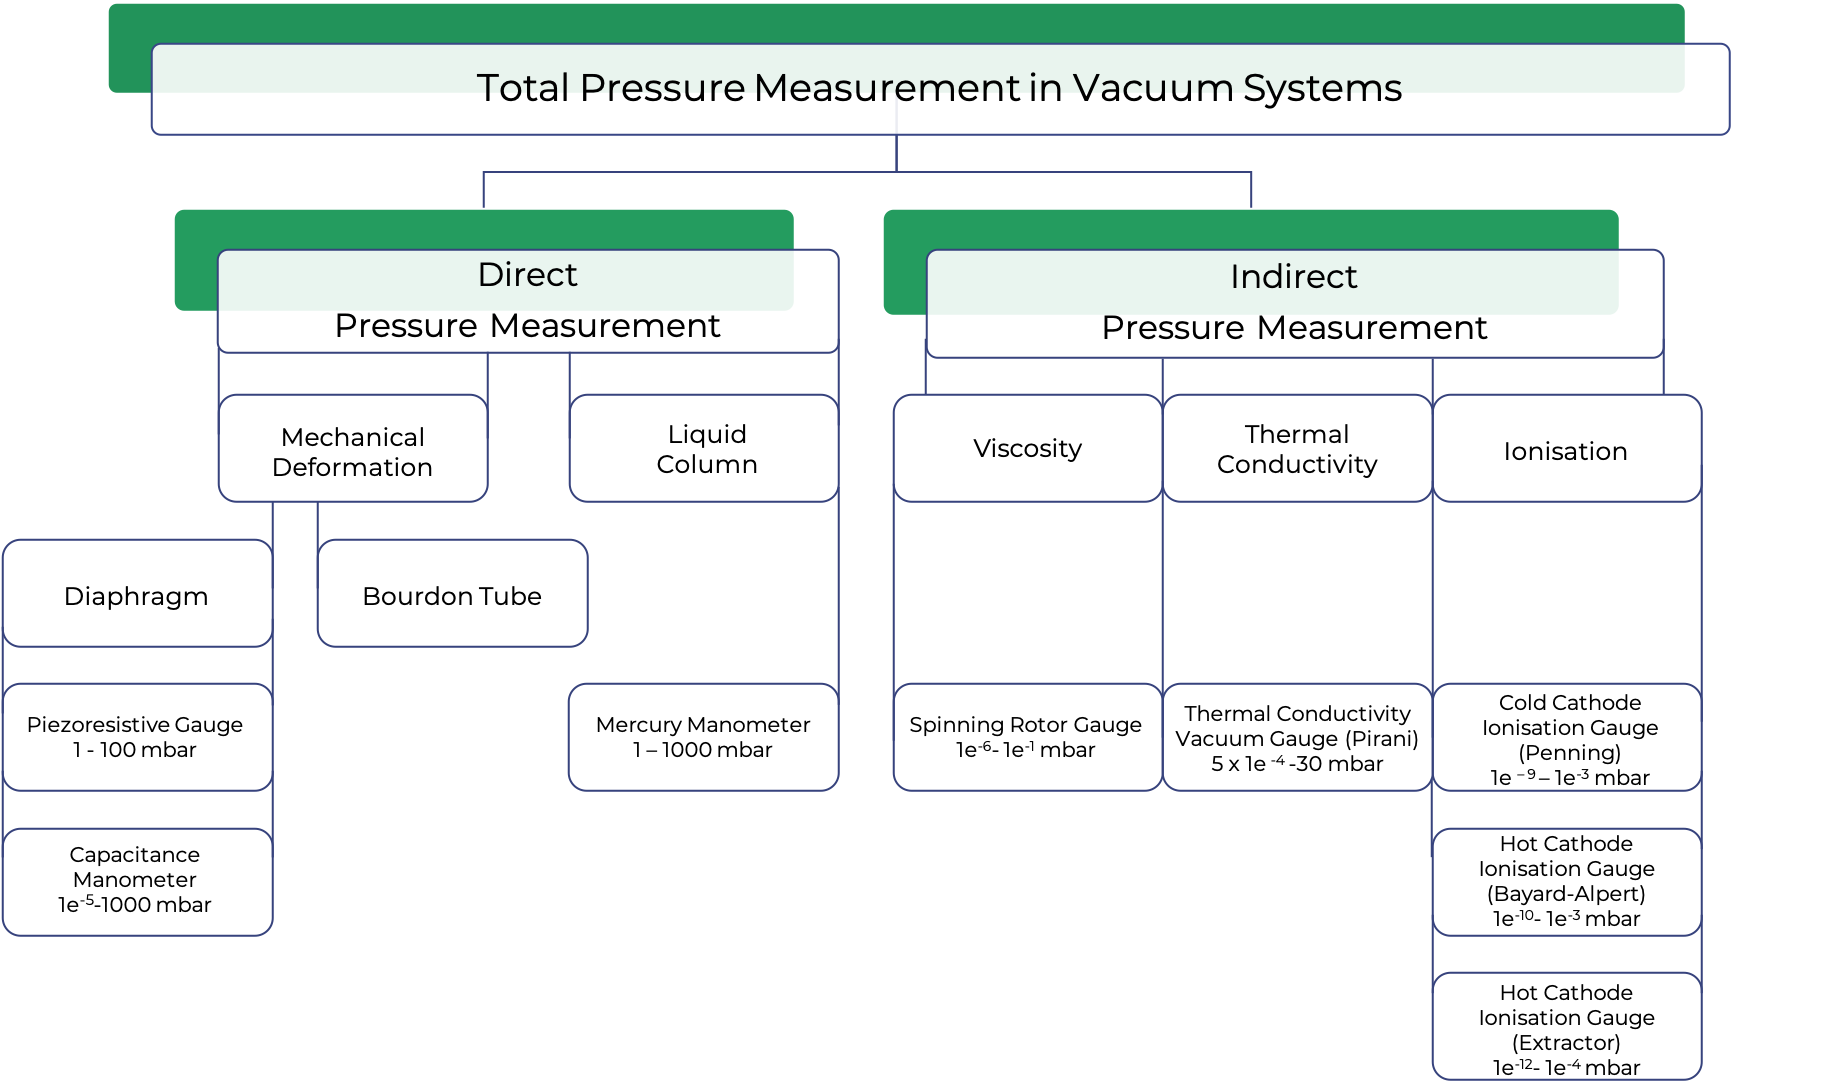 total_pressure_measurement_for_lp - HV, UHV, XHV (updated)